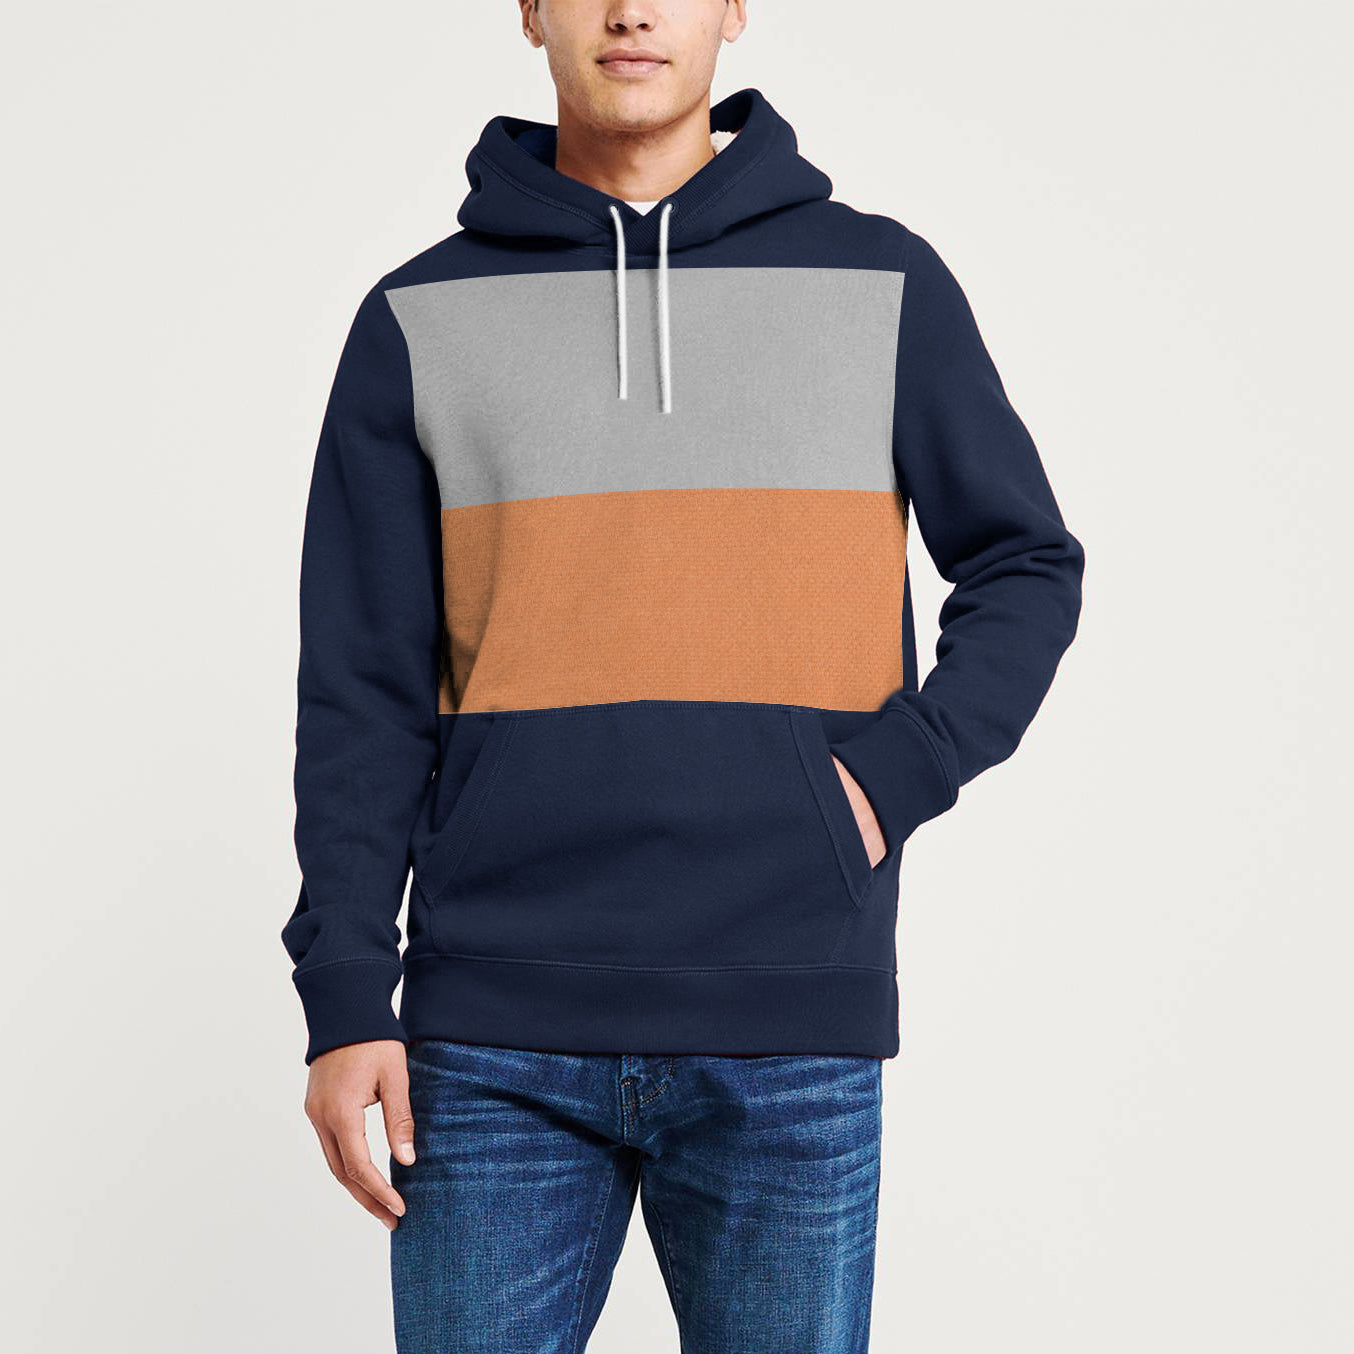 Next Terry Fleece Pullover Hoodie For Men-Navy Blue With Grey & Camel Panel-NA10646